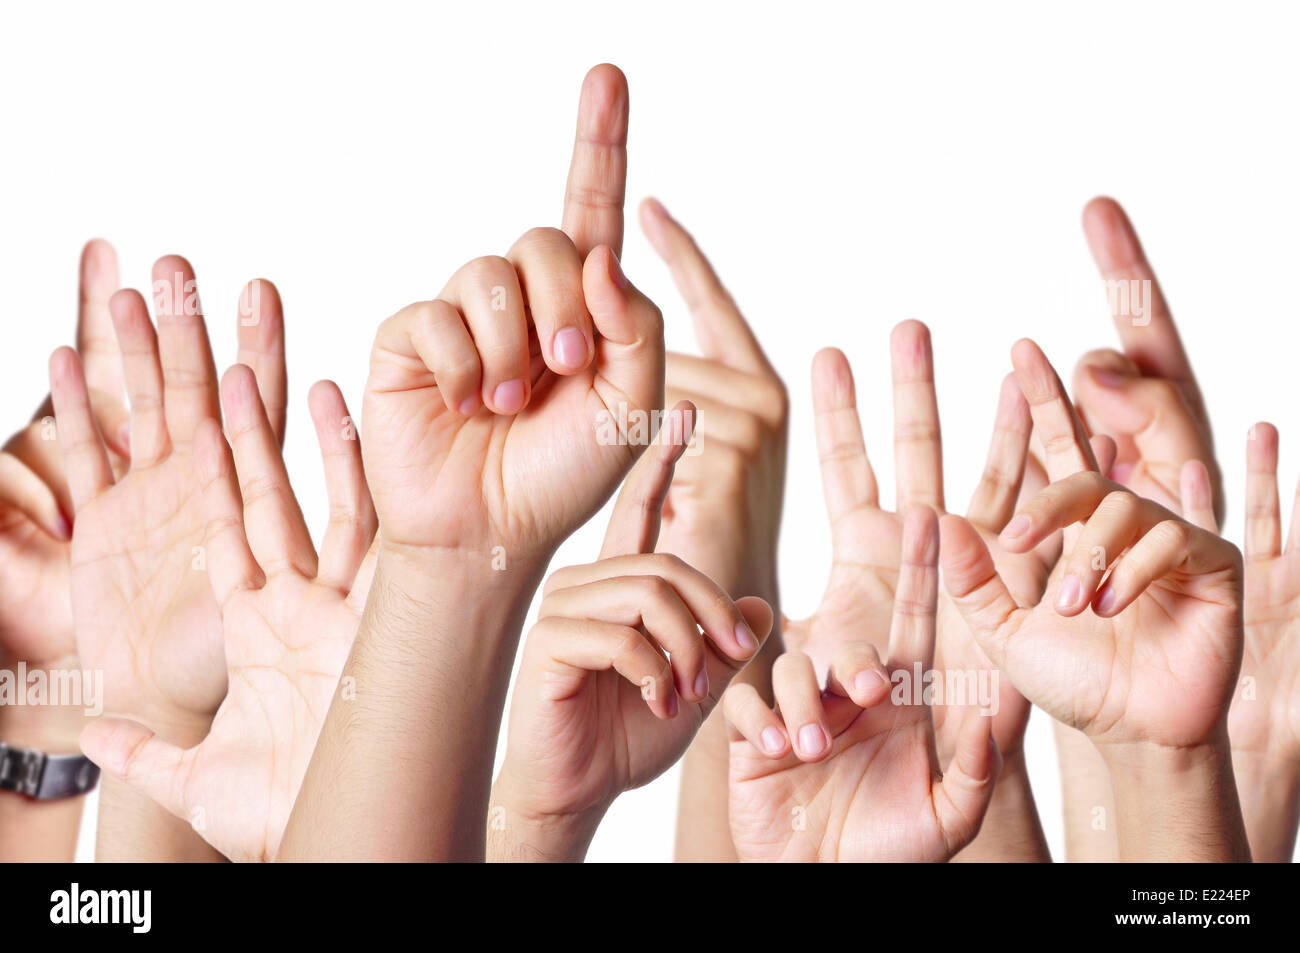 Hands raised together - Stock Image